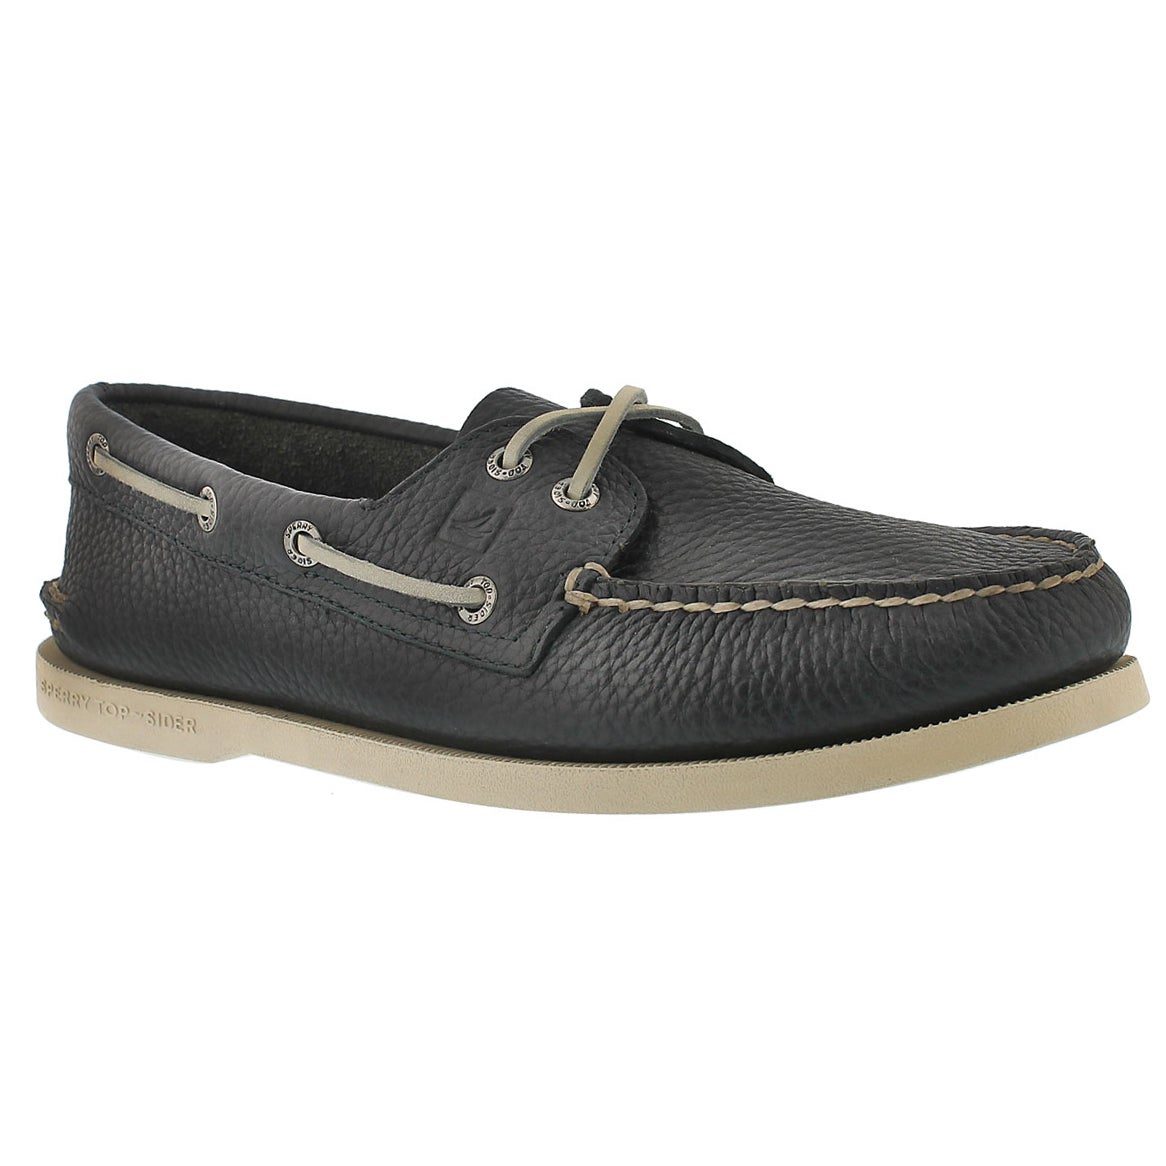 Mns A/O 2-eye navy boat shoe